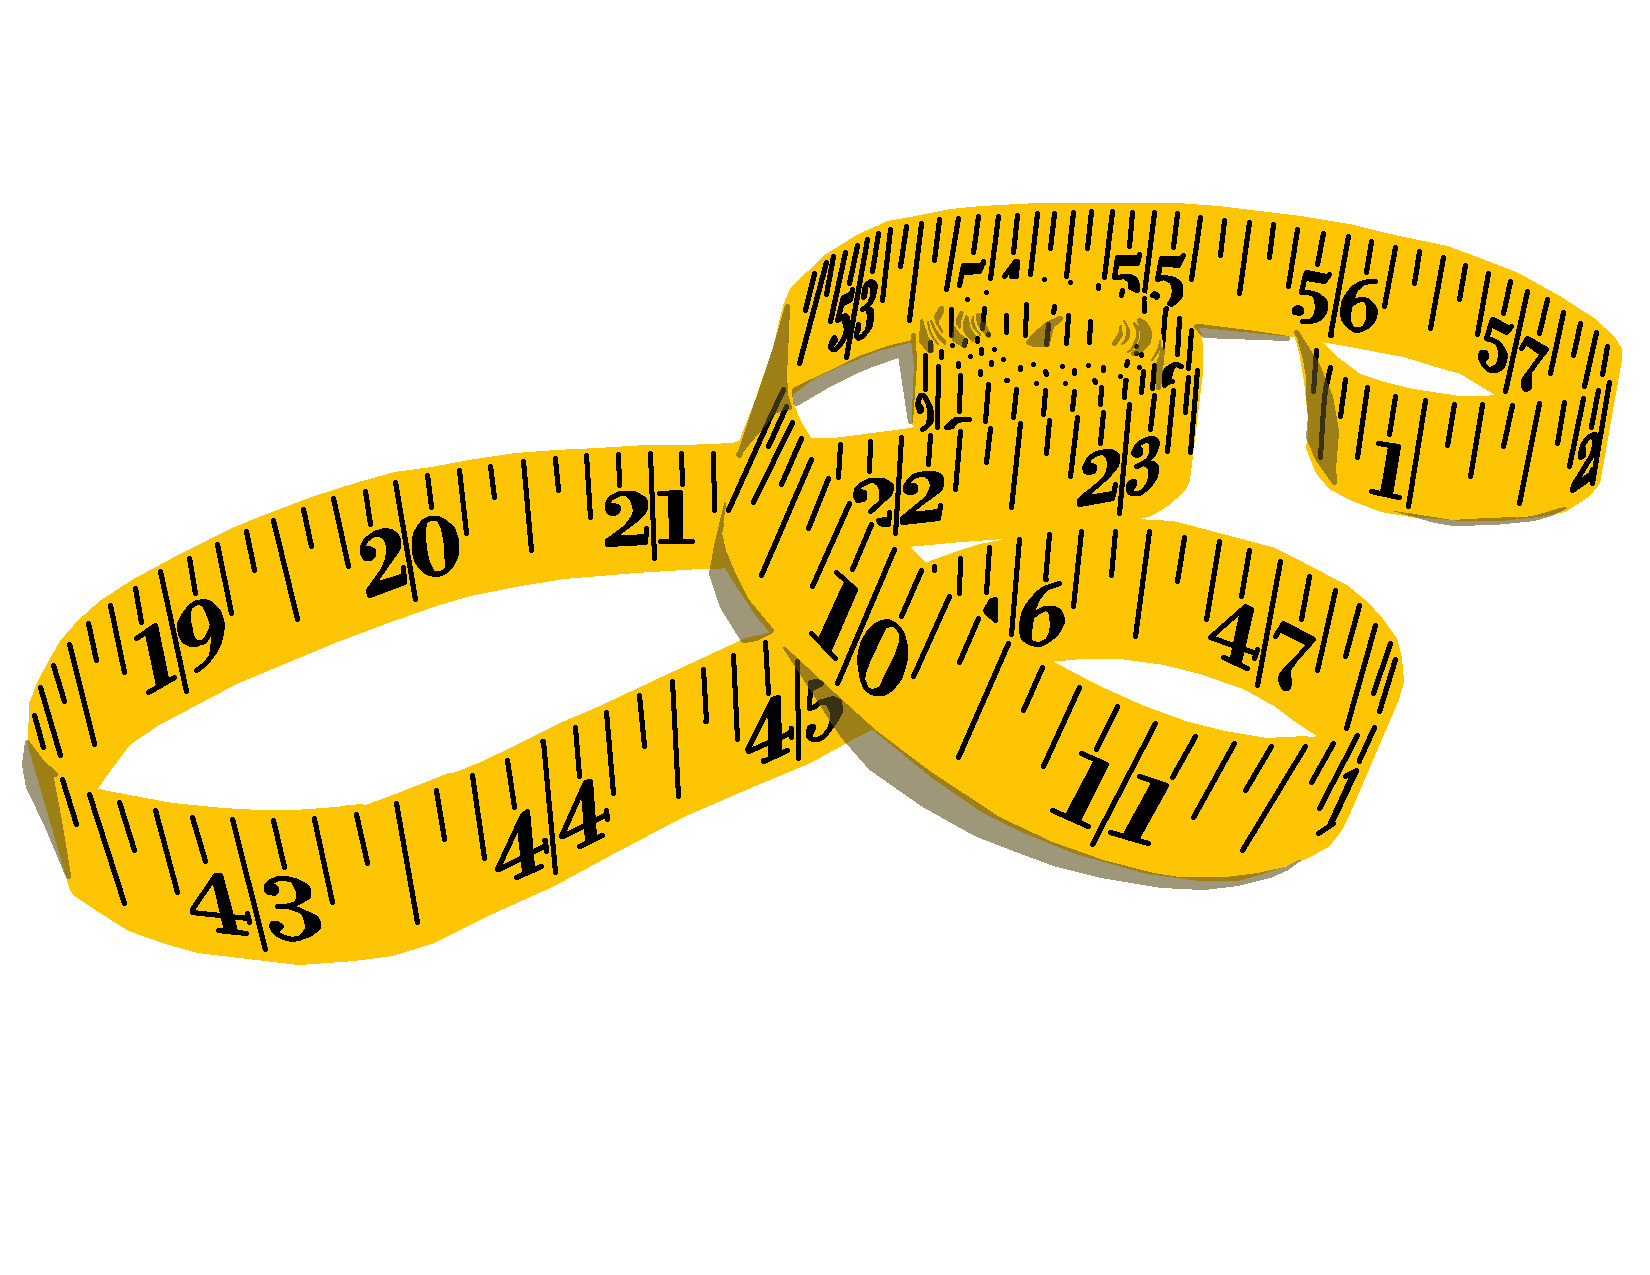 Picture Of Tape Measure